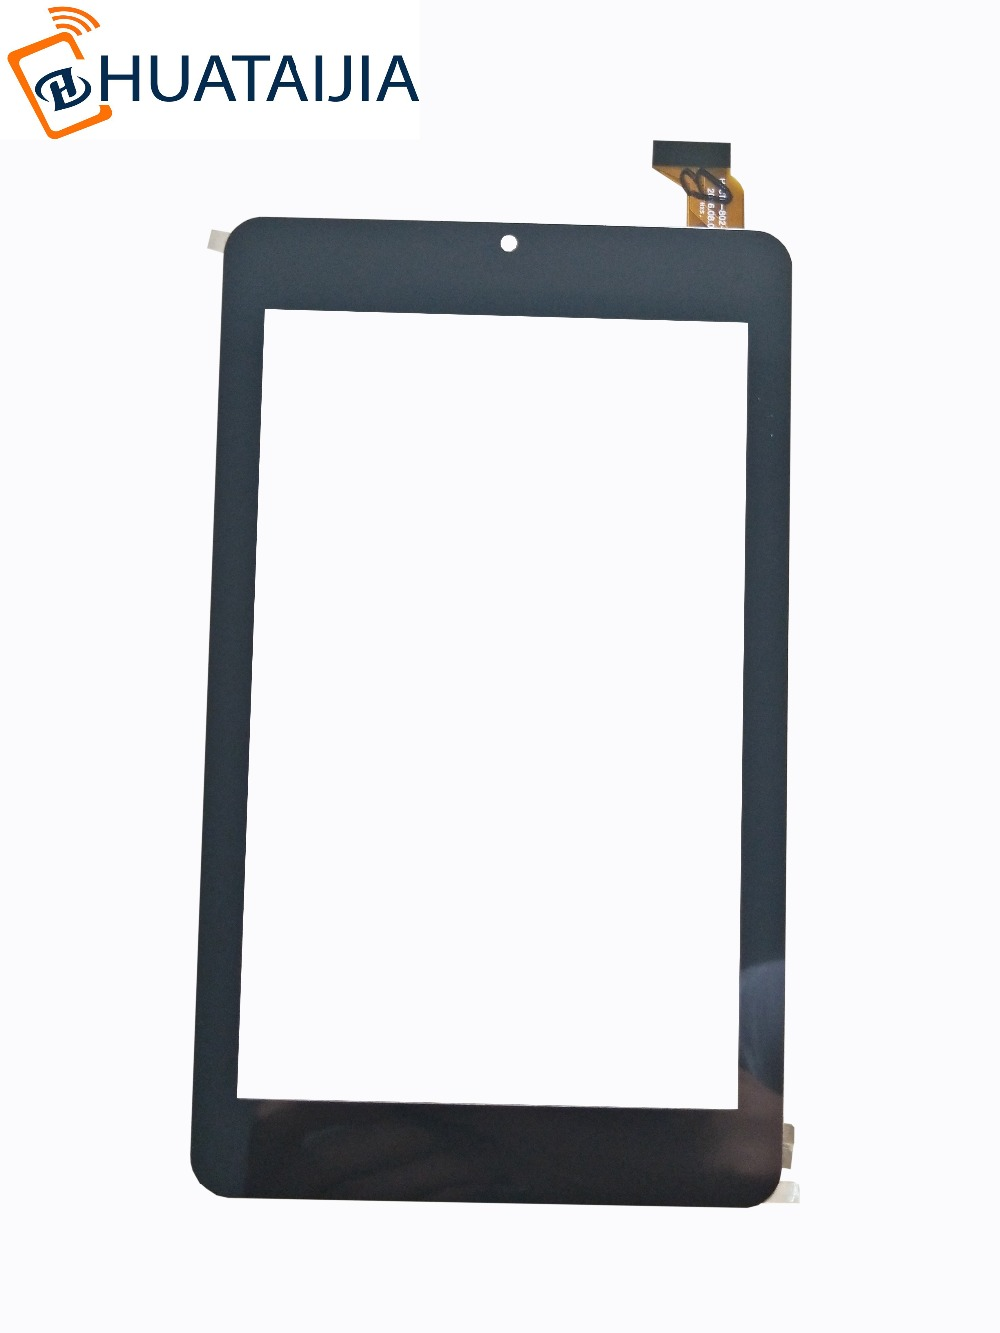 New For 7 inch Tablet Alldaymall A88T A88T PRO touch screen panel Digitizer Glass Sensor Replacement Free Shipping free film new for 7 inch qumo altair 71 tablet touch screen digitizer glass sensor panel replacement free shipping